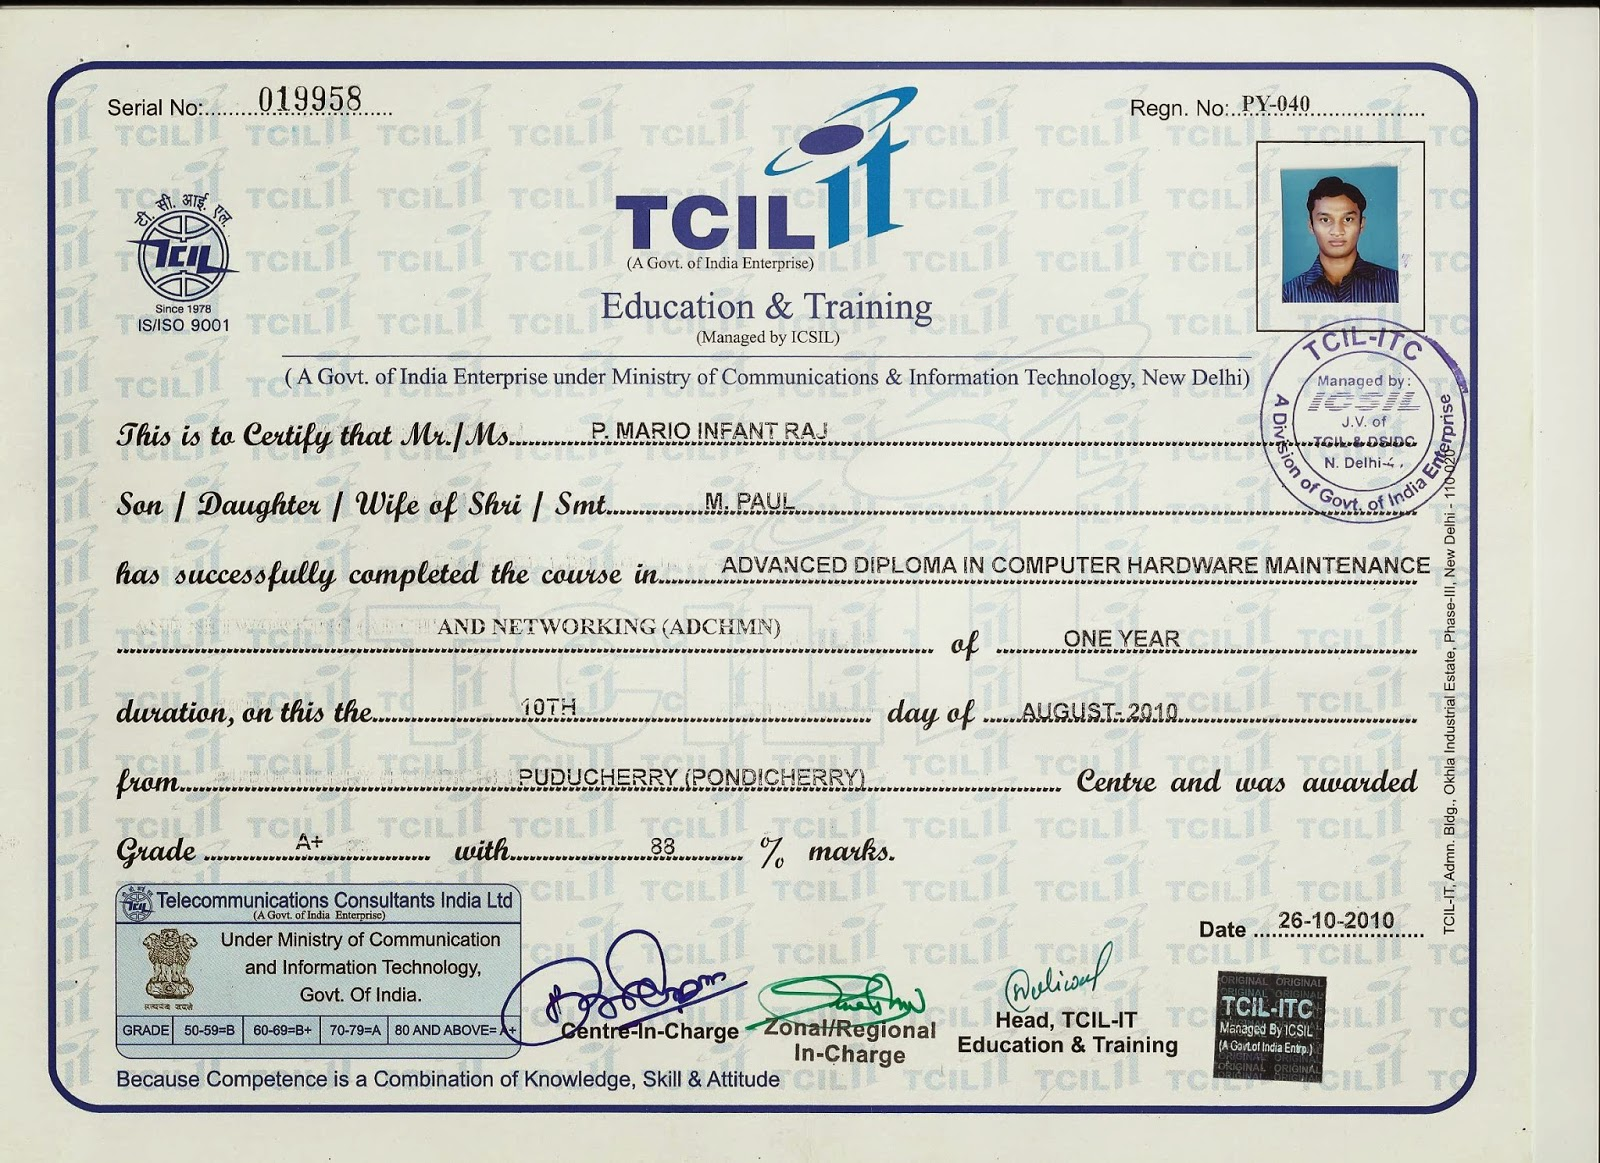 Hi tech global services computer services pondicherry he has made and attended many certificate programs on computer science and has 23 certificates on it as a slow work started working on day and night started 1betcityfo Images